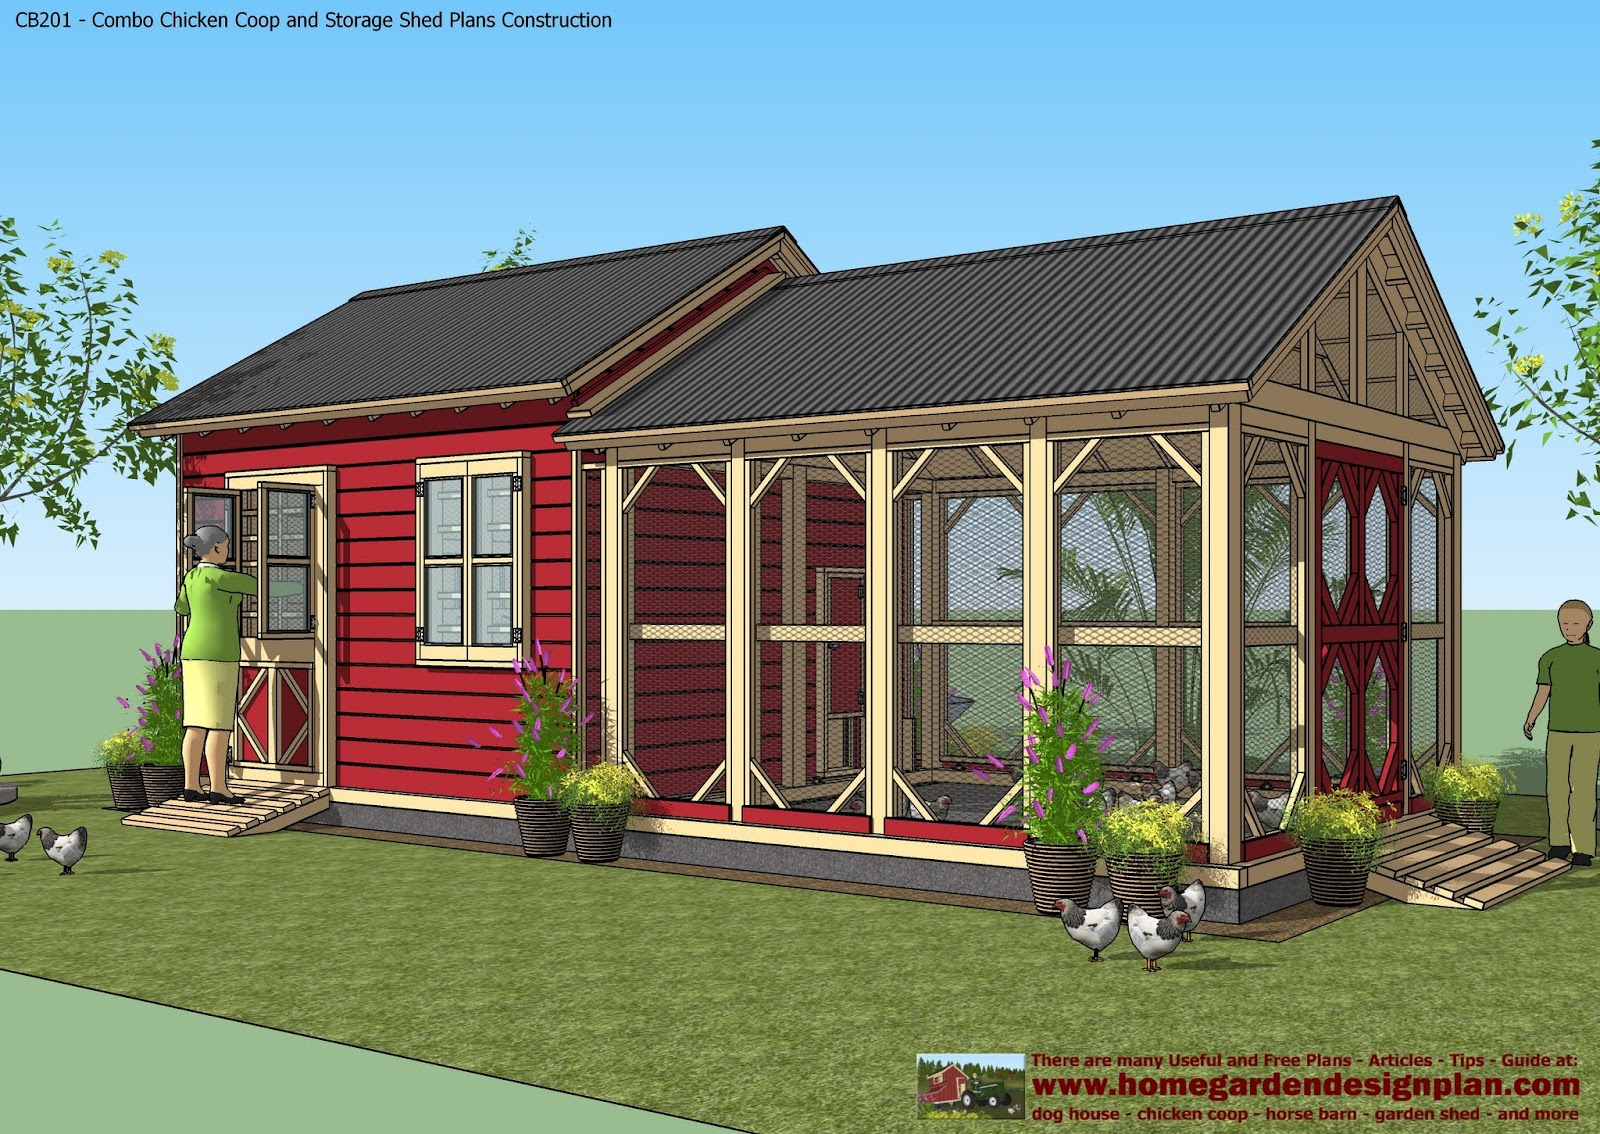 Home Decorating Styles List Home Garden Plans Cb201 Combo Plans Chicken Coop